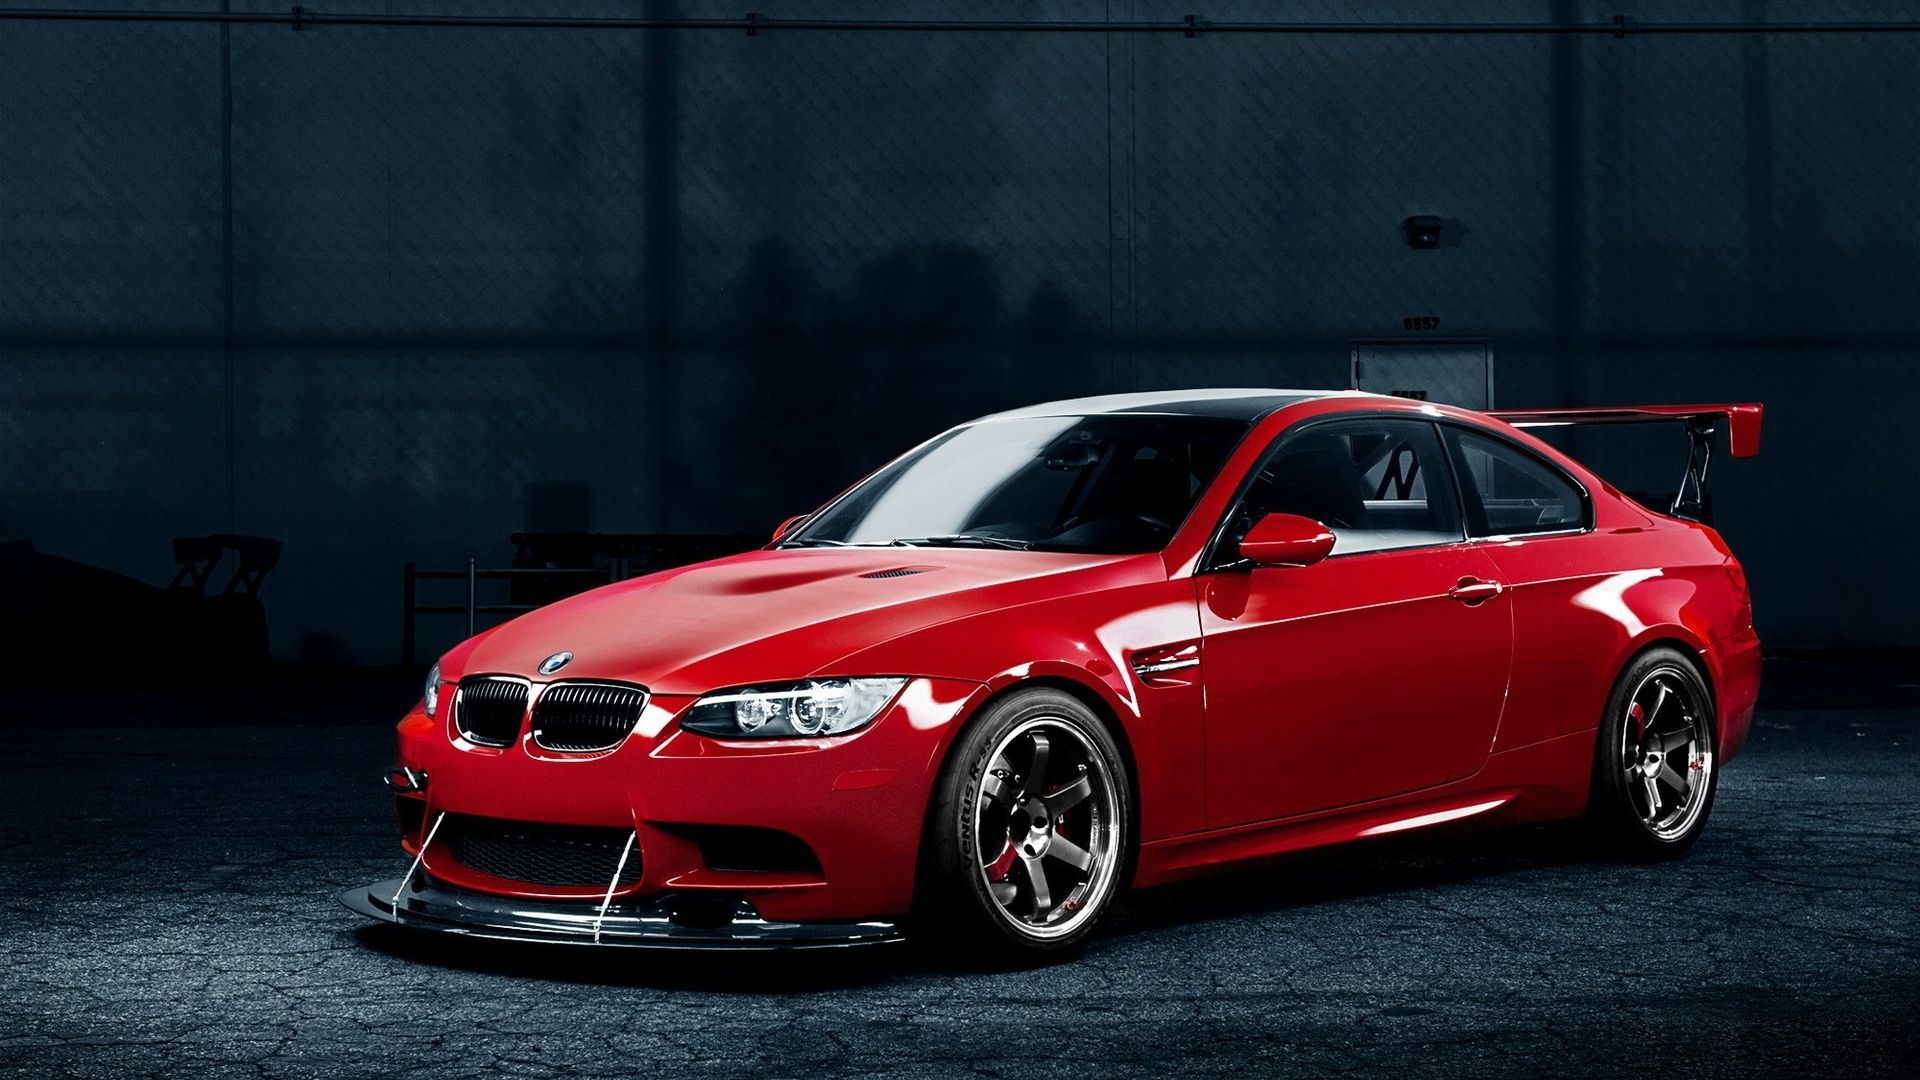 Bmw Wallpapers Is A Fantastic Hd Wallpaper For Your Pc Or Mac And Is